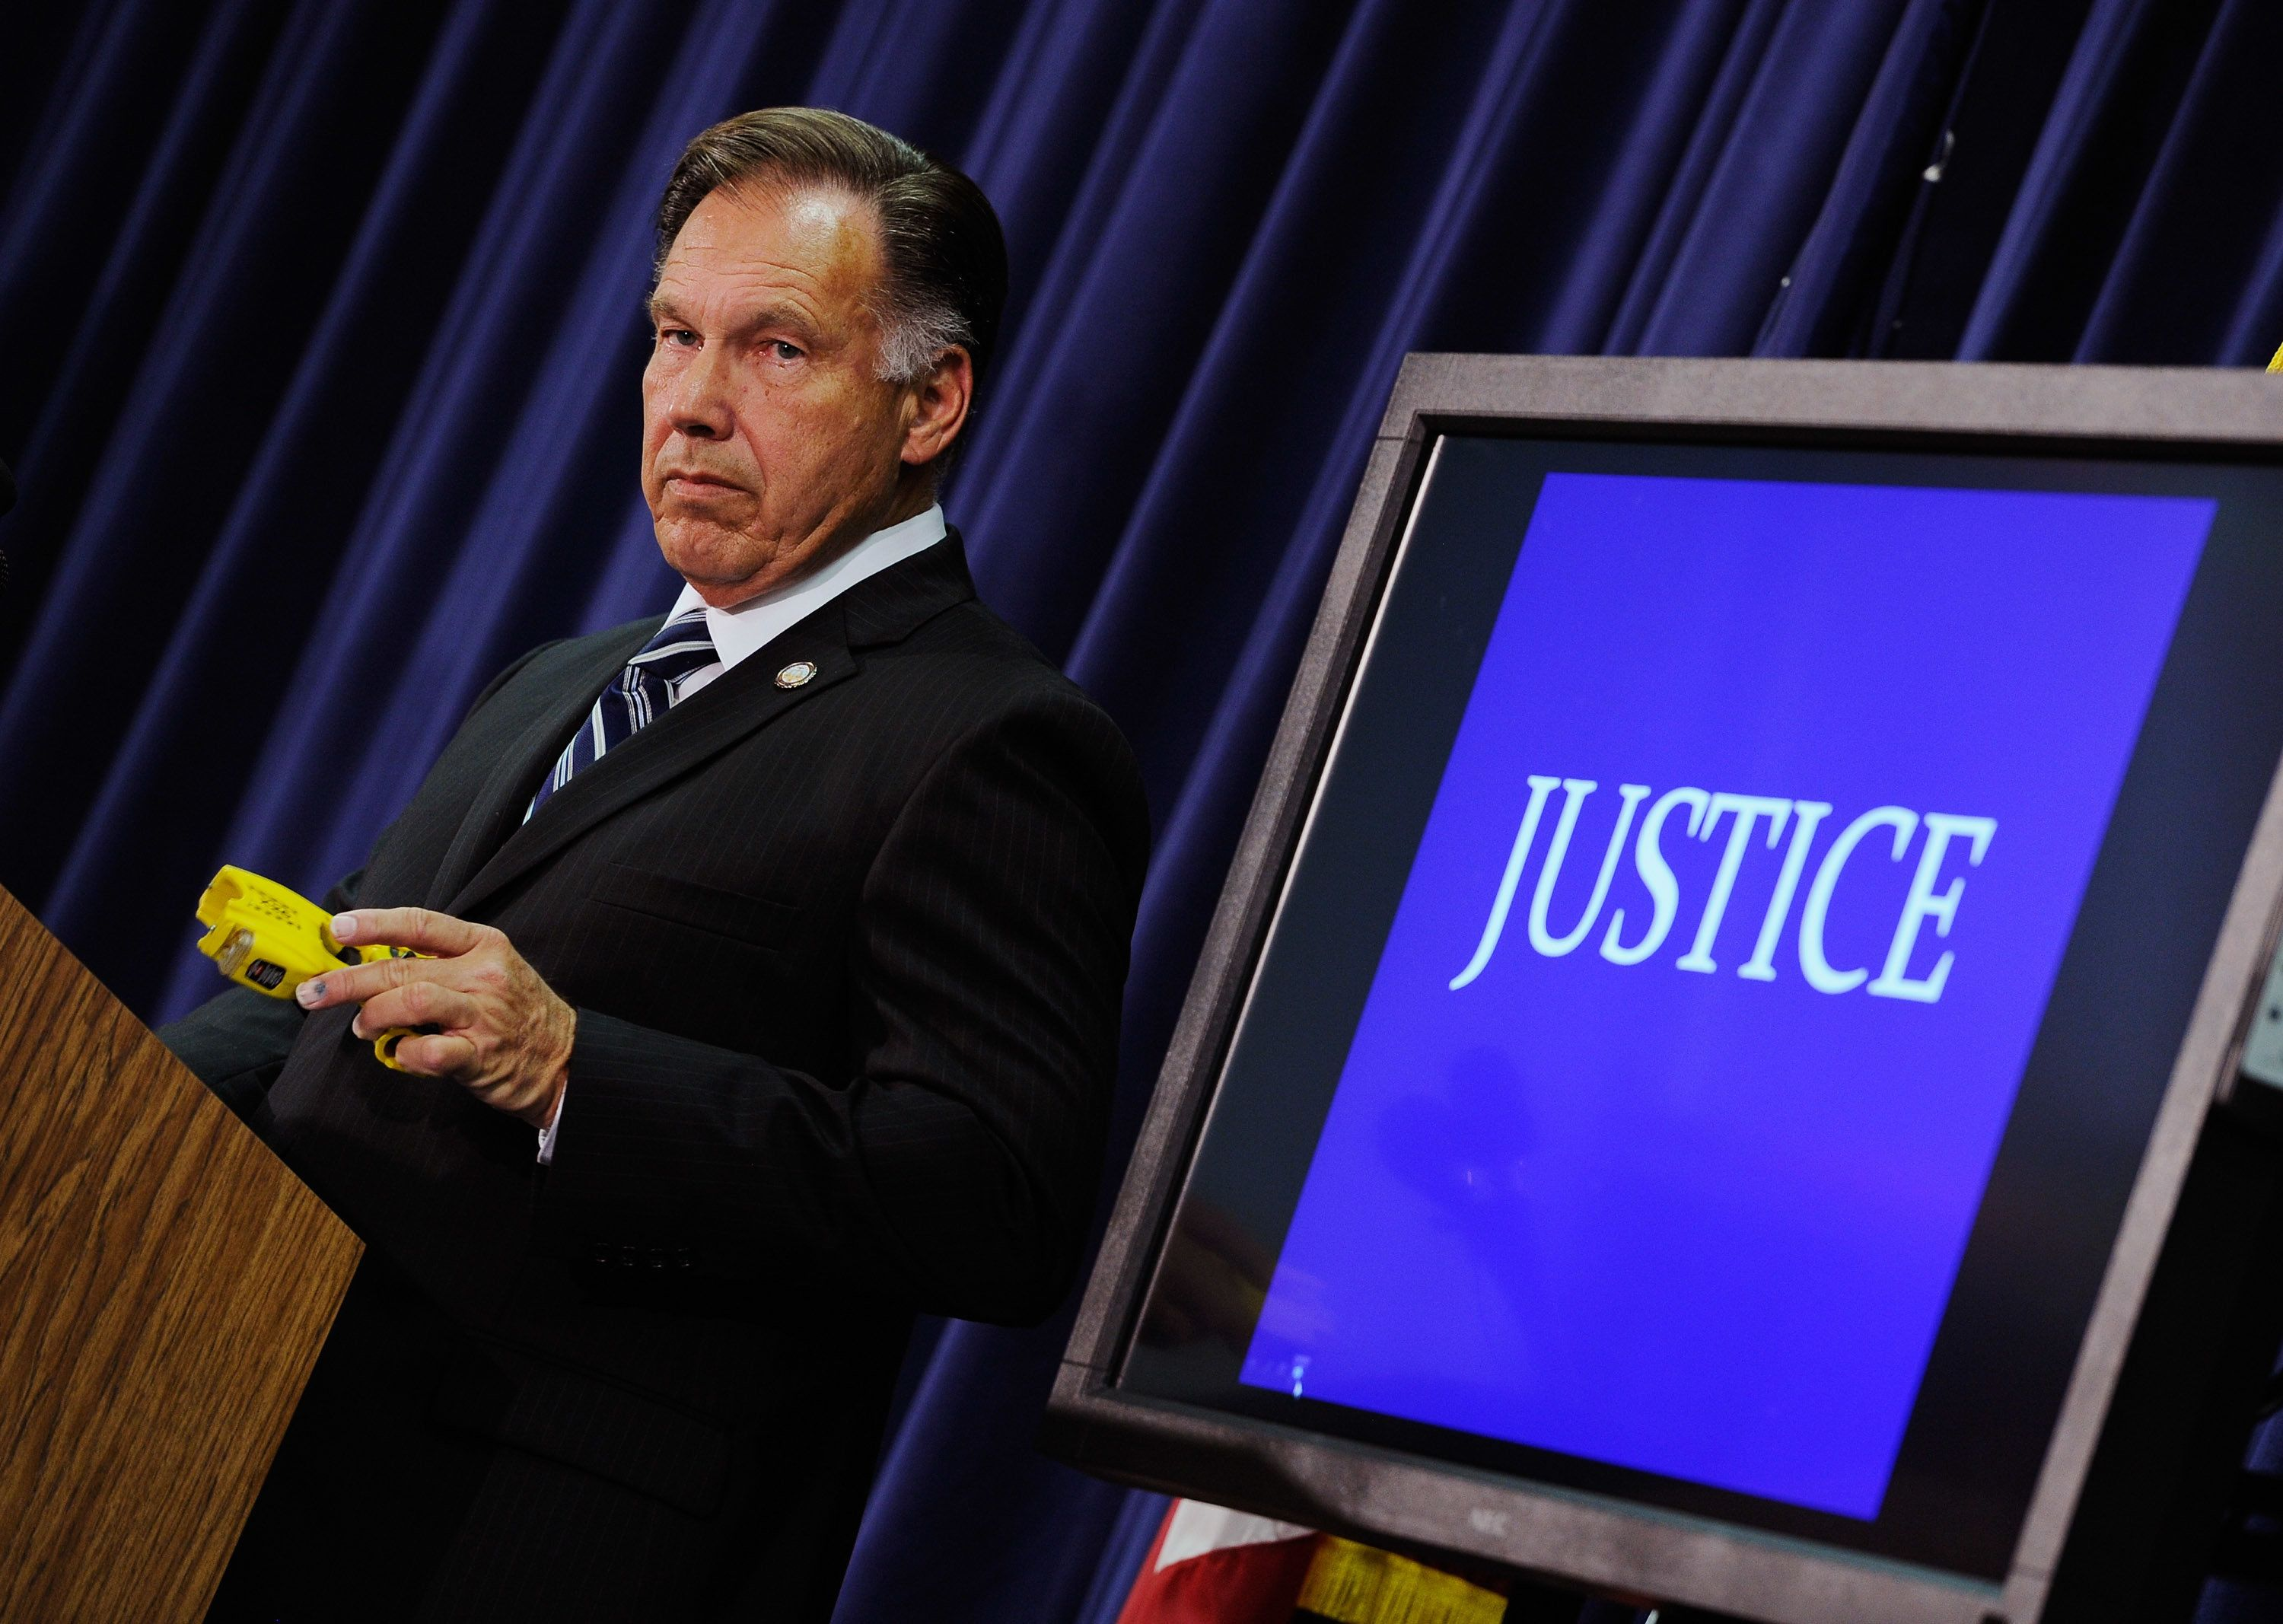 Orange County District Attorney Tony Rackauckas is seenduring a news conference on Sept. 21, 2011, in Santa Ana, Califo